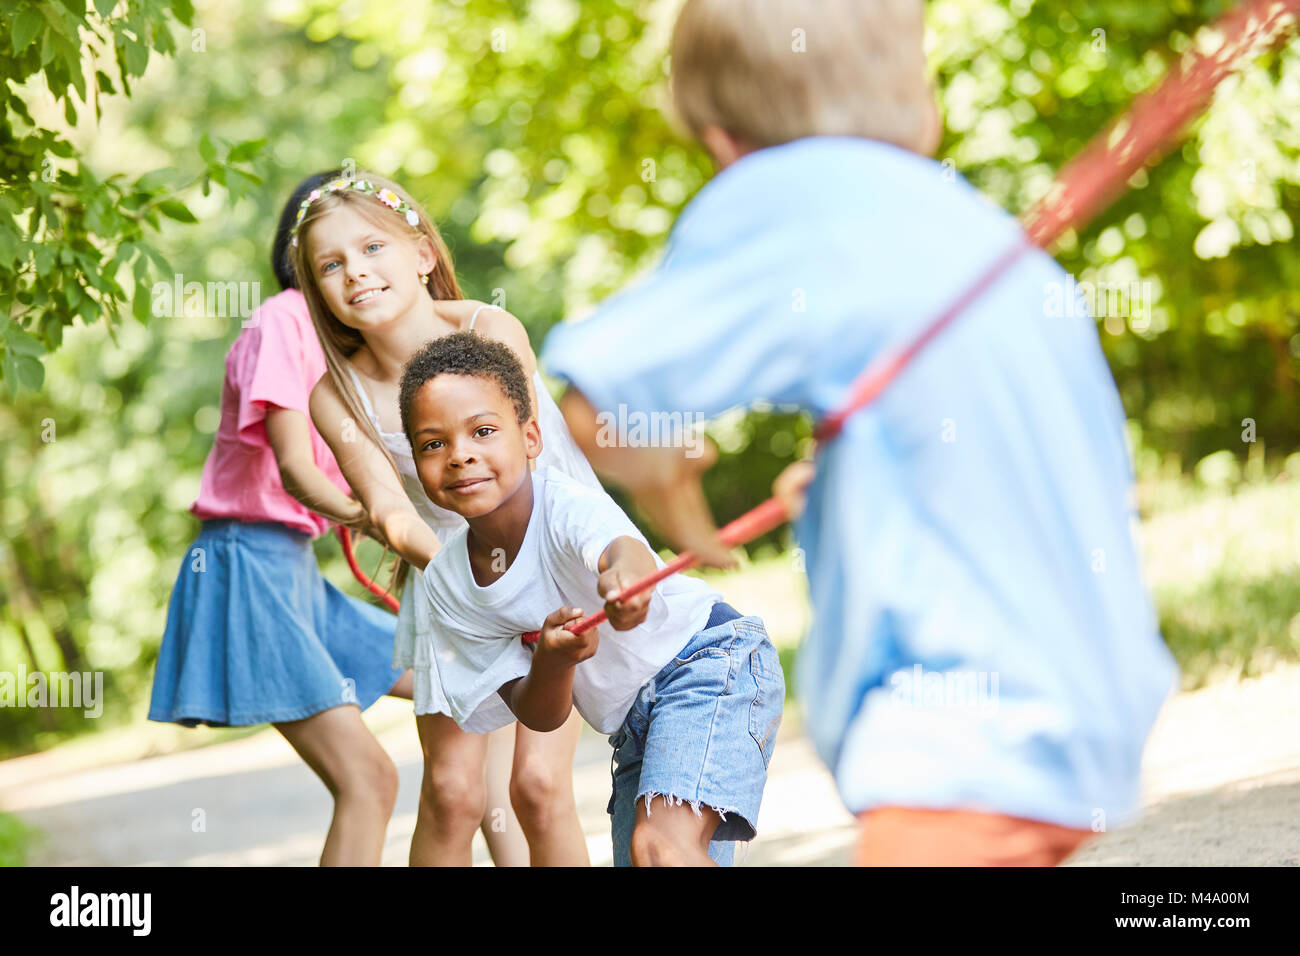 Group of kids in tug-of-war competition as a strong team in nature - Stock Image